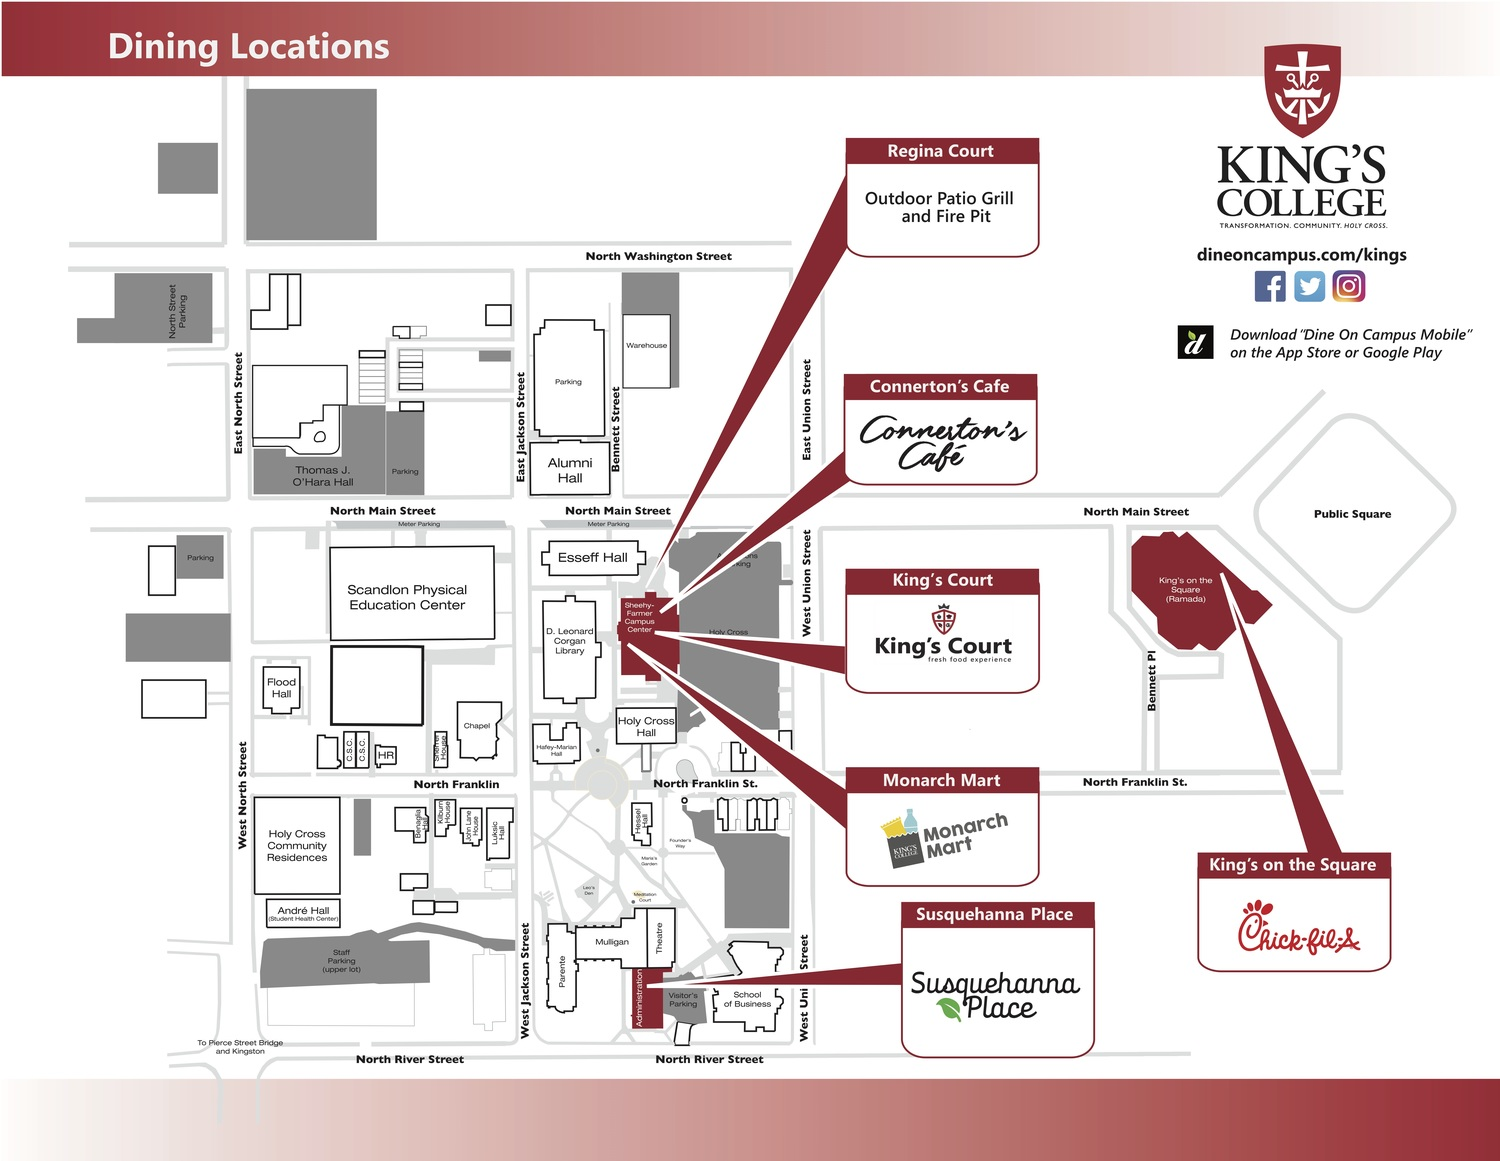 Dine On Campus at King's College    Campus Map King S College Campus Map on king's college charlotte nc dorms, king's college wrestling, gordon campus map, washington adventist university campus map, tarleton state campus map, chestnut hill campus map, university of saint francis campus map, mary baldwin campus map, caldwell university campus map, swedish hospital seattle campus map, webster campus map, uhv campus map, malone campus map, armstrong state university campus map, gwynedd mercy university campus map, rmu campus map, ecpi university campus map, penn state lehigh valley campus map, everest university campus map, neumont university campus map,